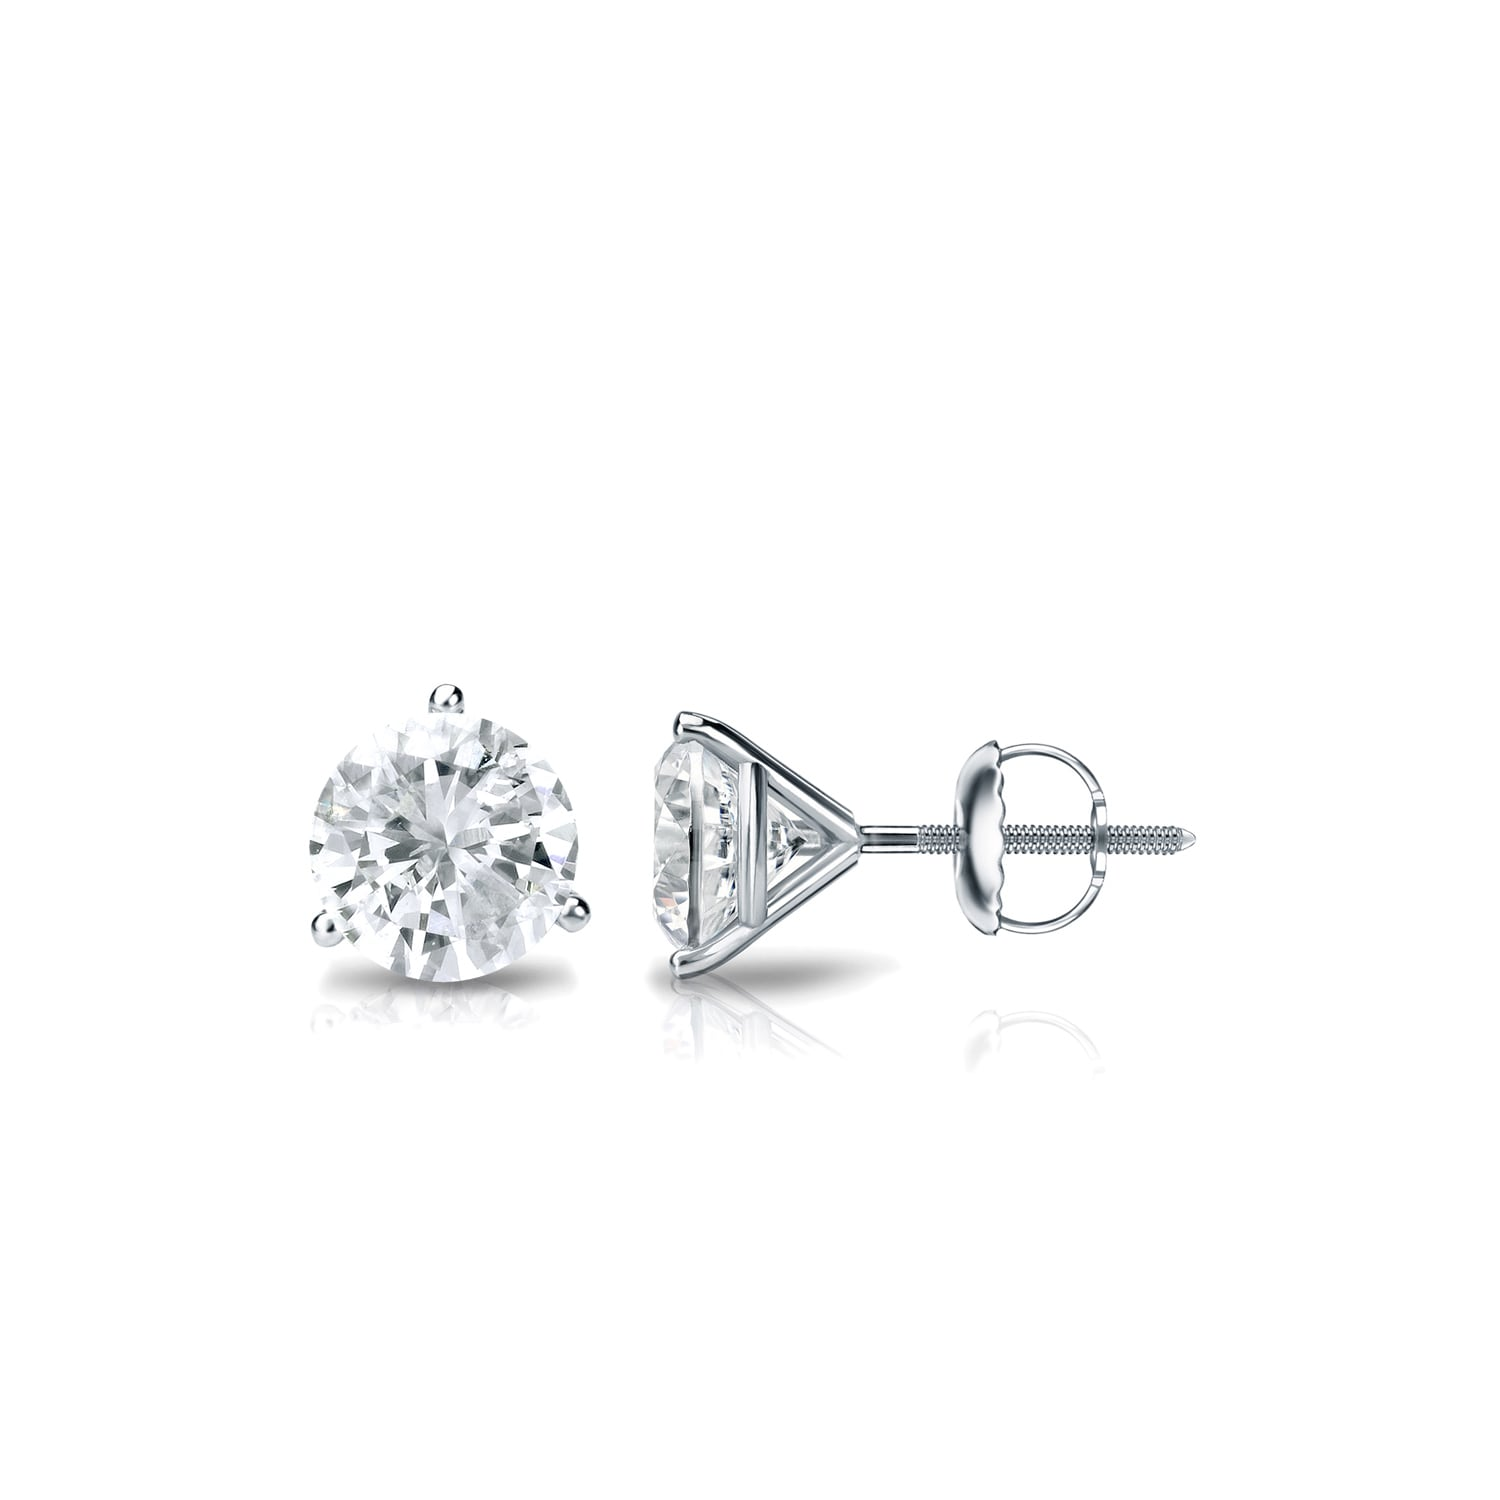 Platinum 1 2ct Tdw Round Three G Martini Diamond Stud Earrings By Auriya White J K Free Shipping Today 10906127